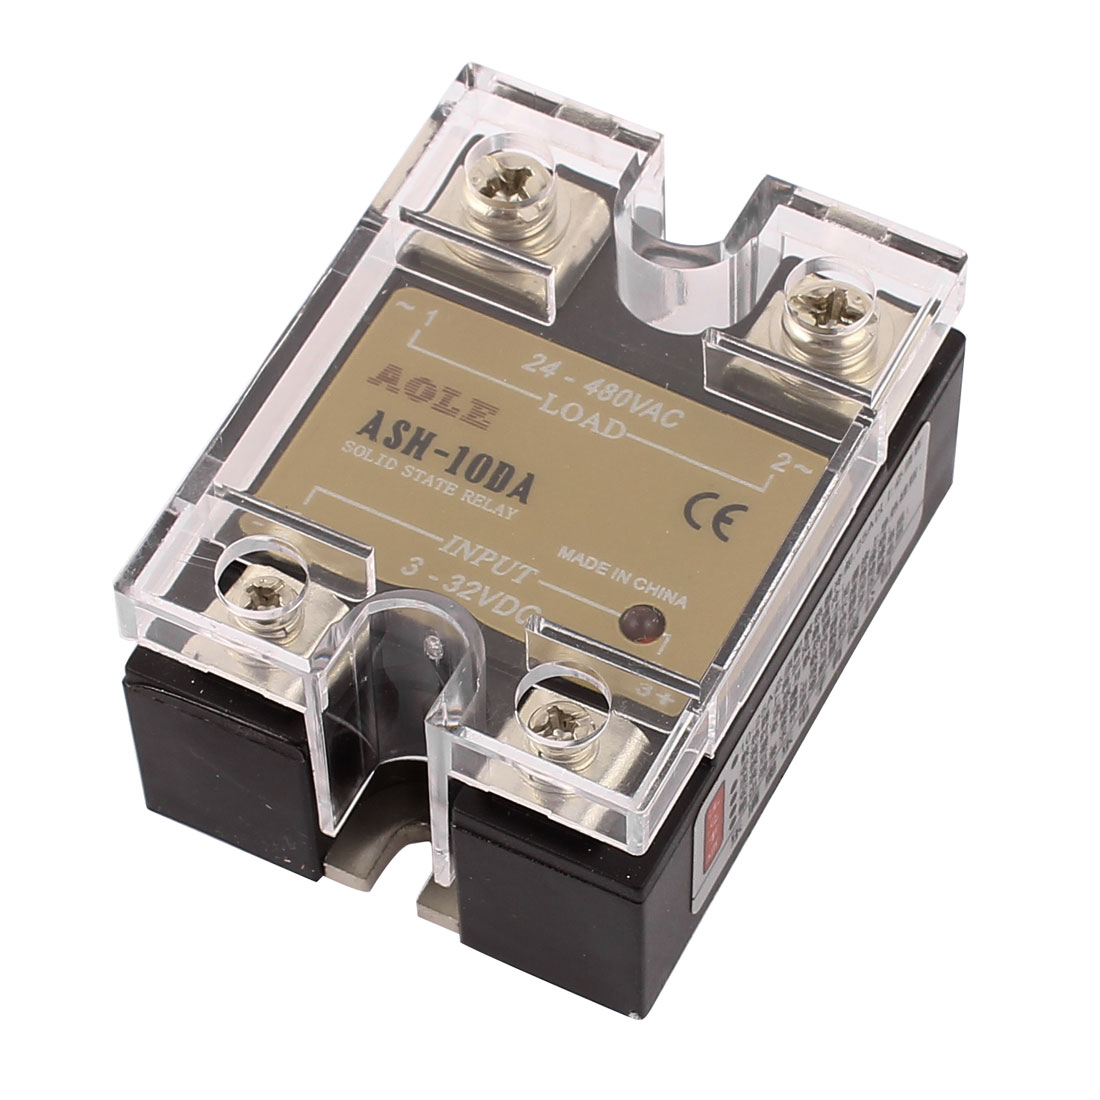 ASH-10DA 3-32VDC to 480VAC 10A Electric Single Phase Solid State DC to  Relay